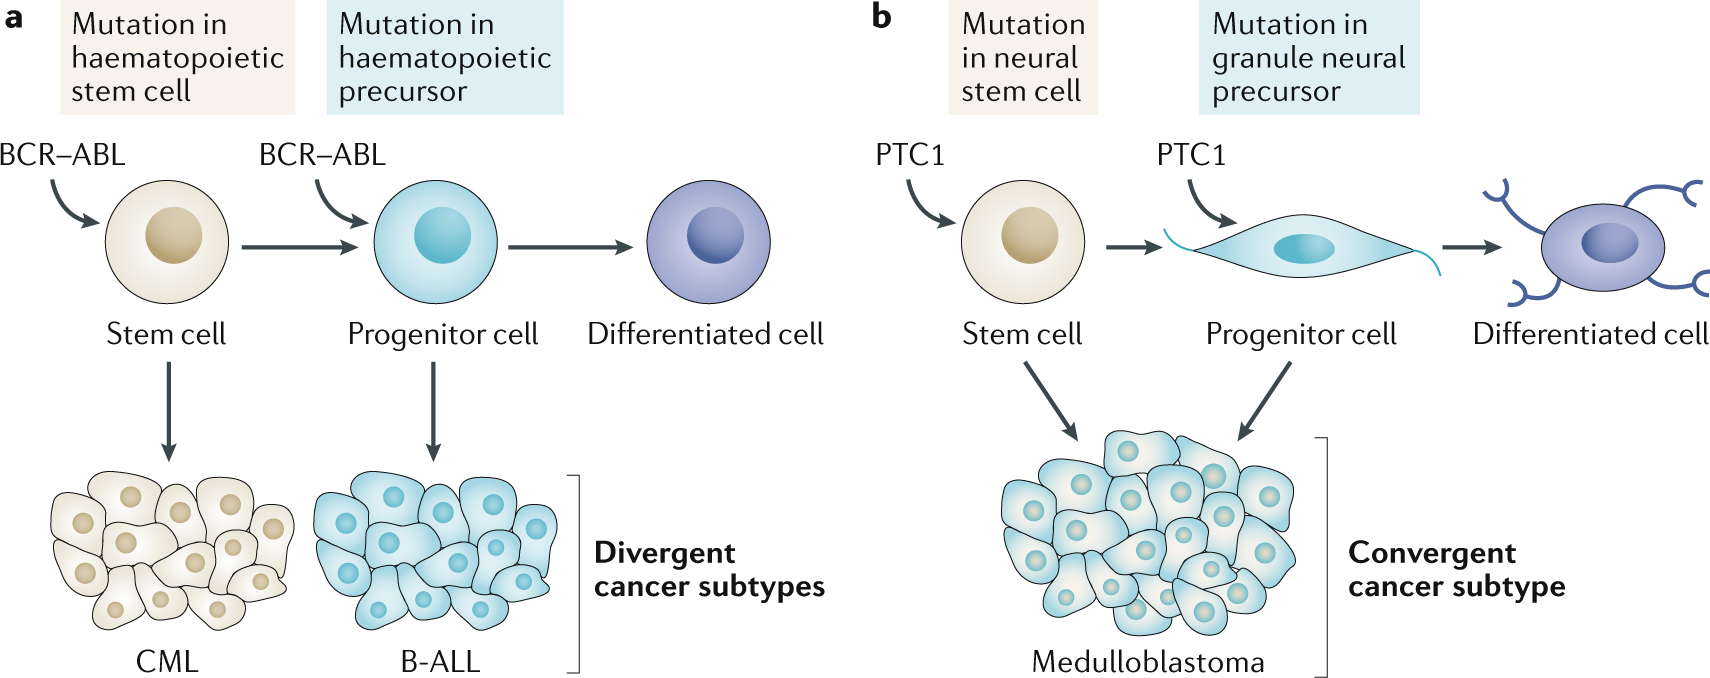 stem cell fate in cancer growth, progression and therapy